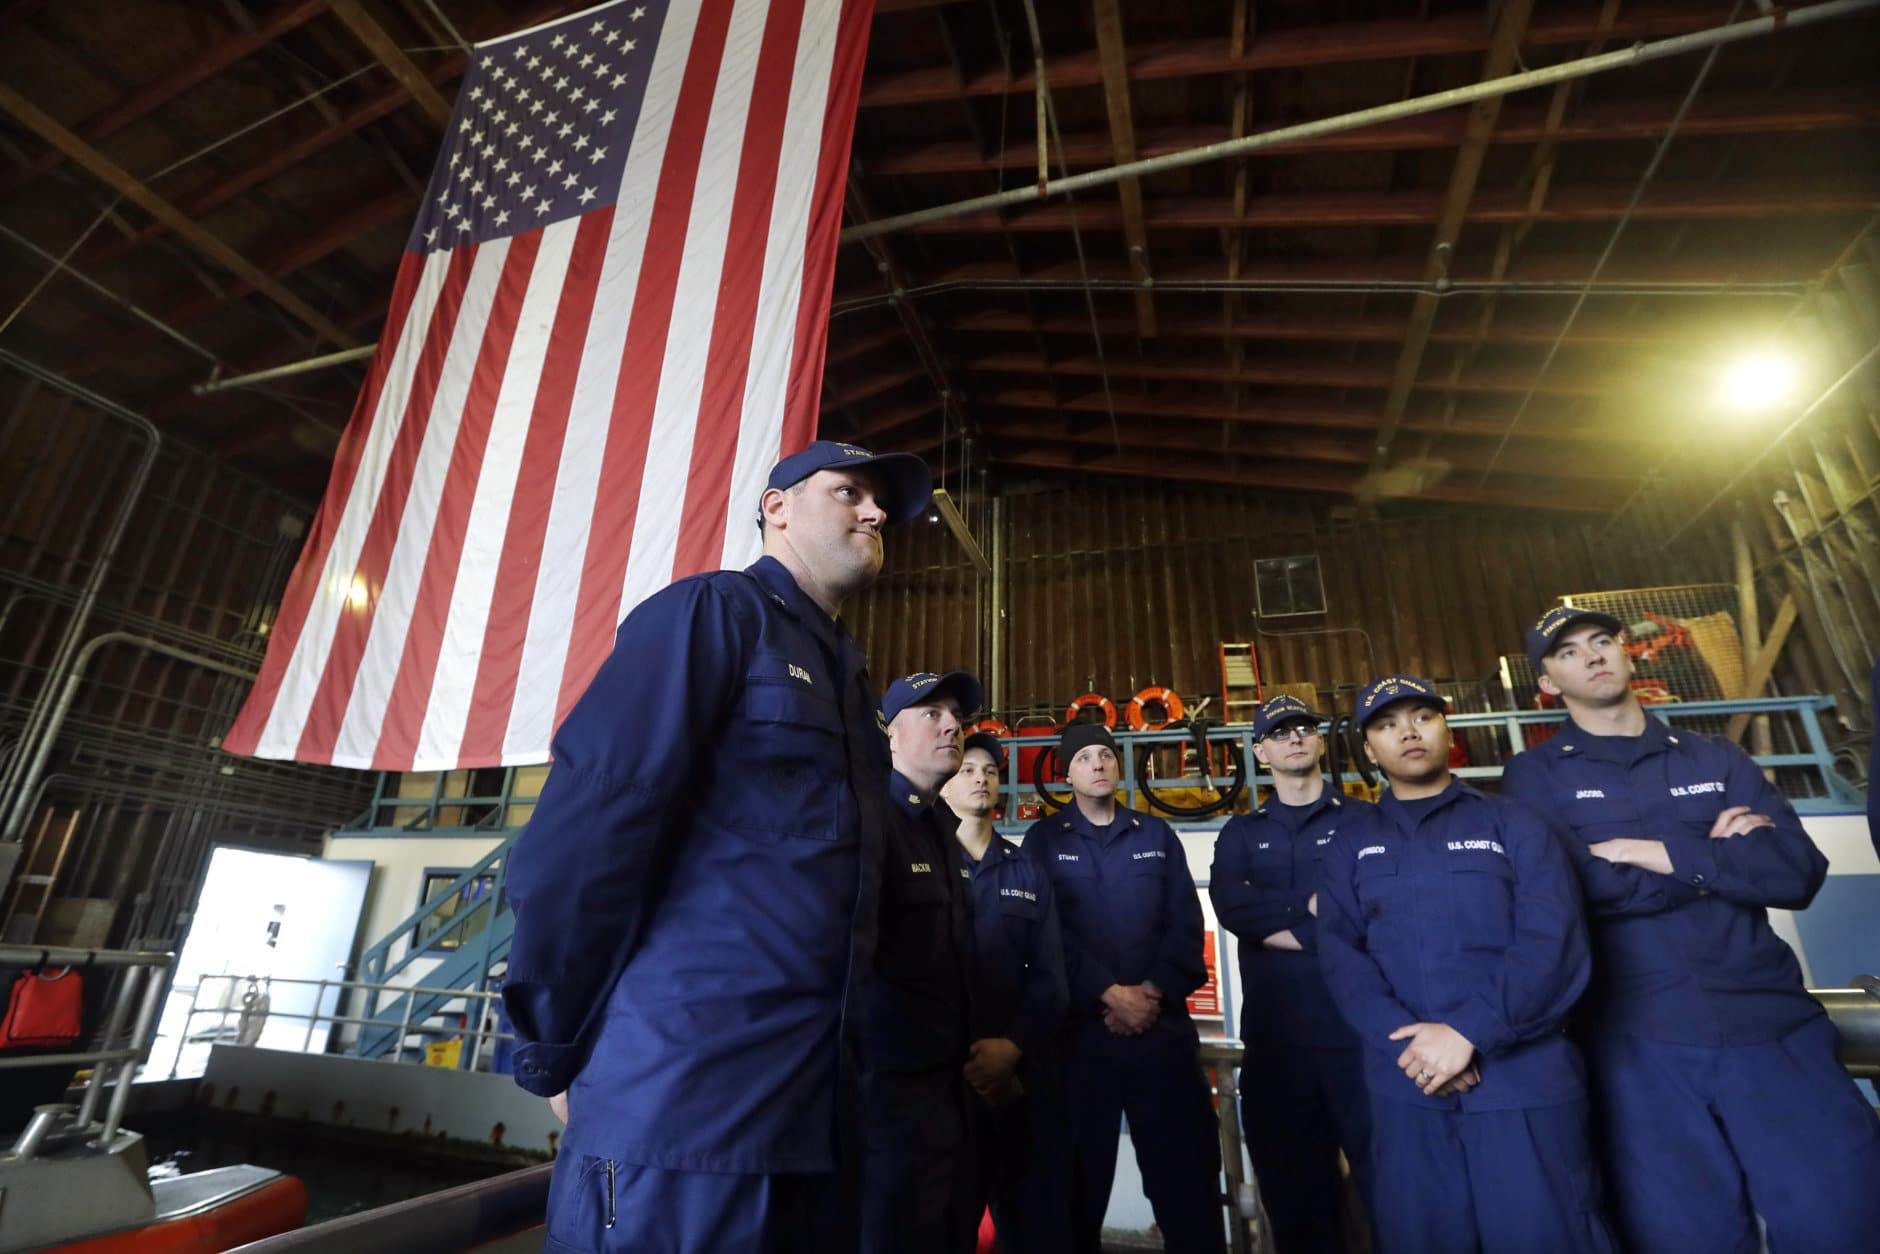 U.S. Coast Guardsmen and women, who missed their first paycheck a day earlier during the partial government shutdown, stand on a 45-foot response boat as they listen to their lieutenant during their shift at Sector Puget Sound base Wednesday, Jan. 16, 2019, in Seattle. They are part of a multi-mission, around-the-clock group charged with security and search and rescue missions. The Coast Guard is part of the U.S. Department of Homeland Security, which is unfunded during the partial government shutdown. (AP Photo/Elaine Thompson)